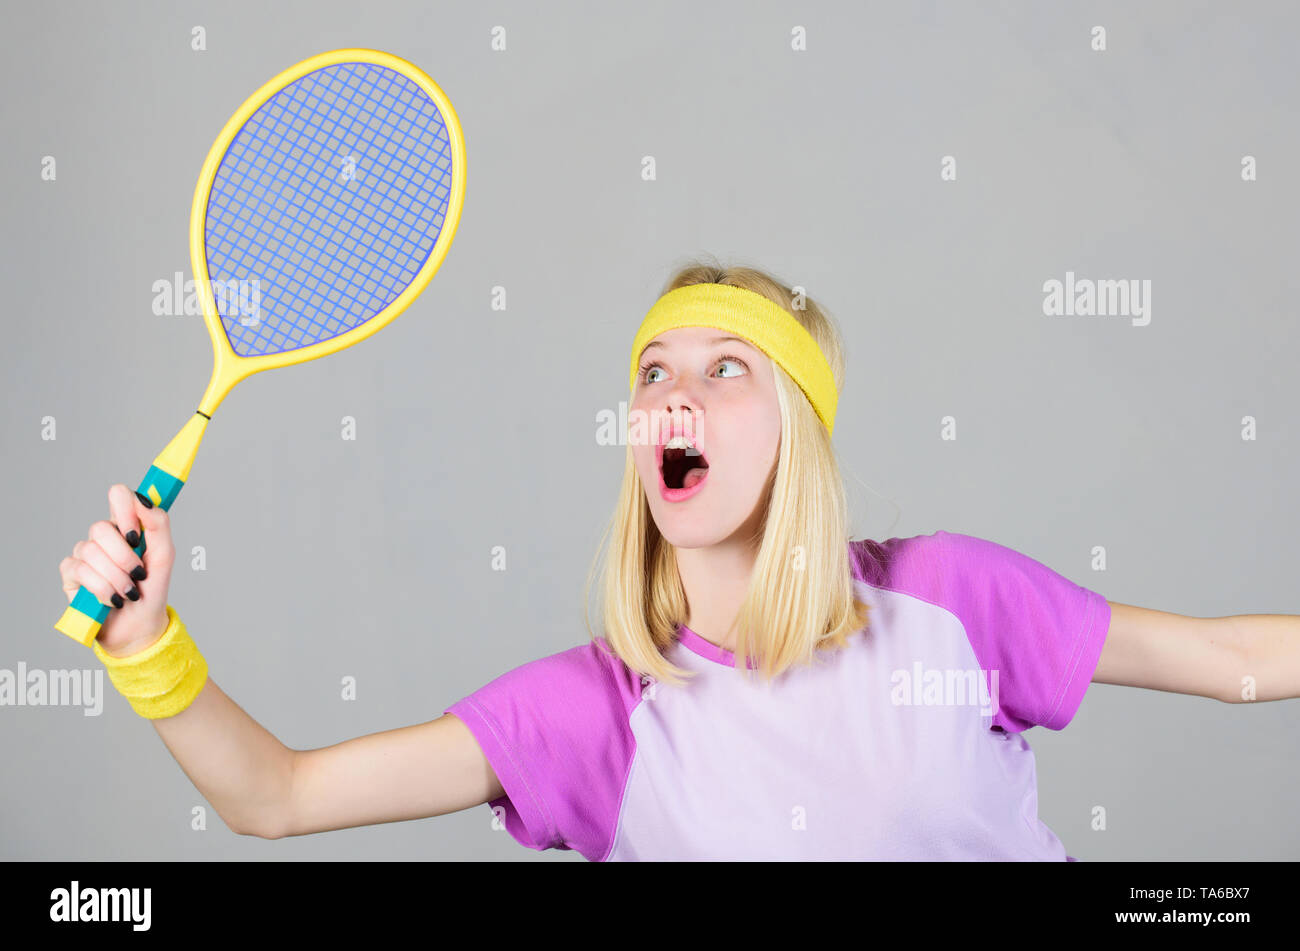 Active lifestyle. Sport for maintaining health. Woman hold tennis racket in hand. Tennis club concept. Tennis sport and entertainment. Active leisure and hobby. Girl fit slim blonde play tennis. - Stock Image